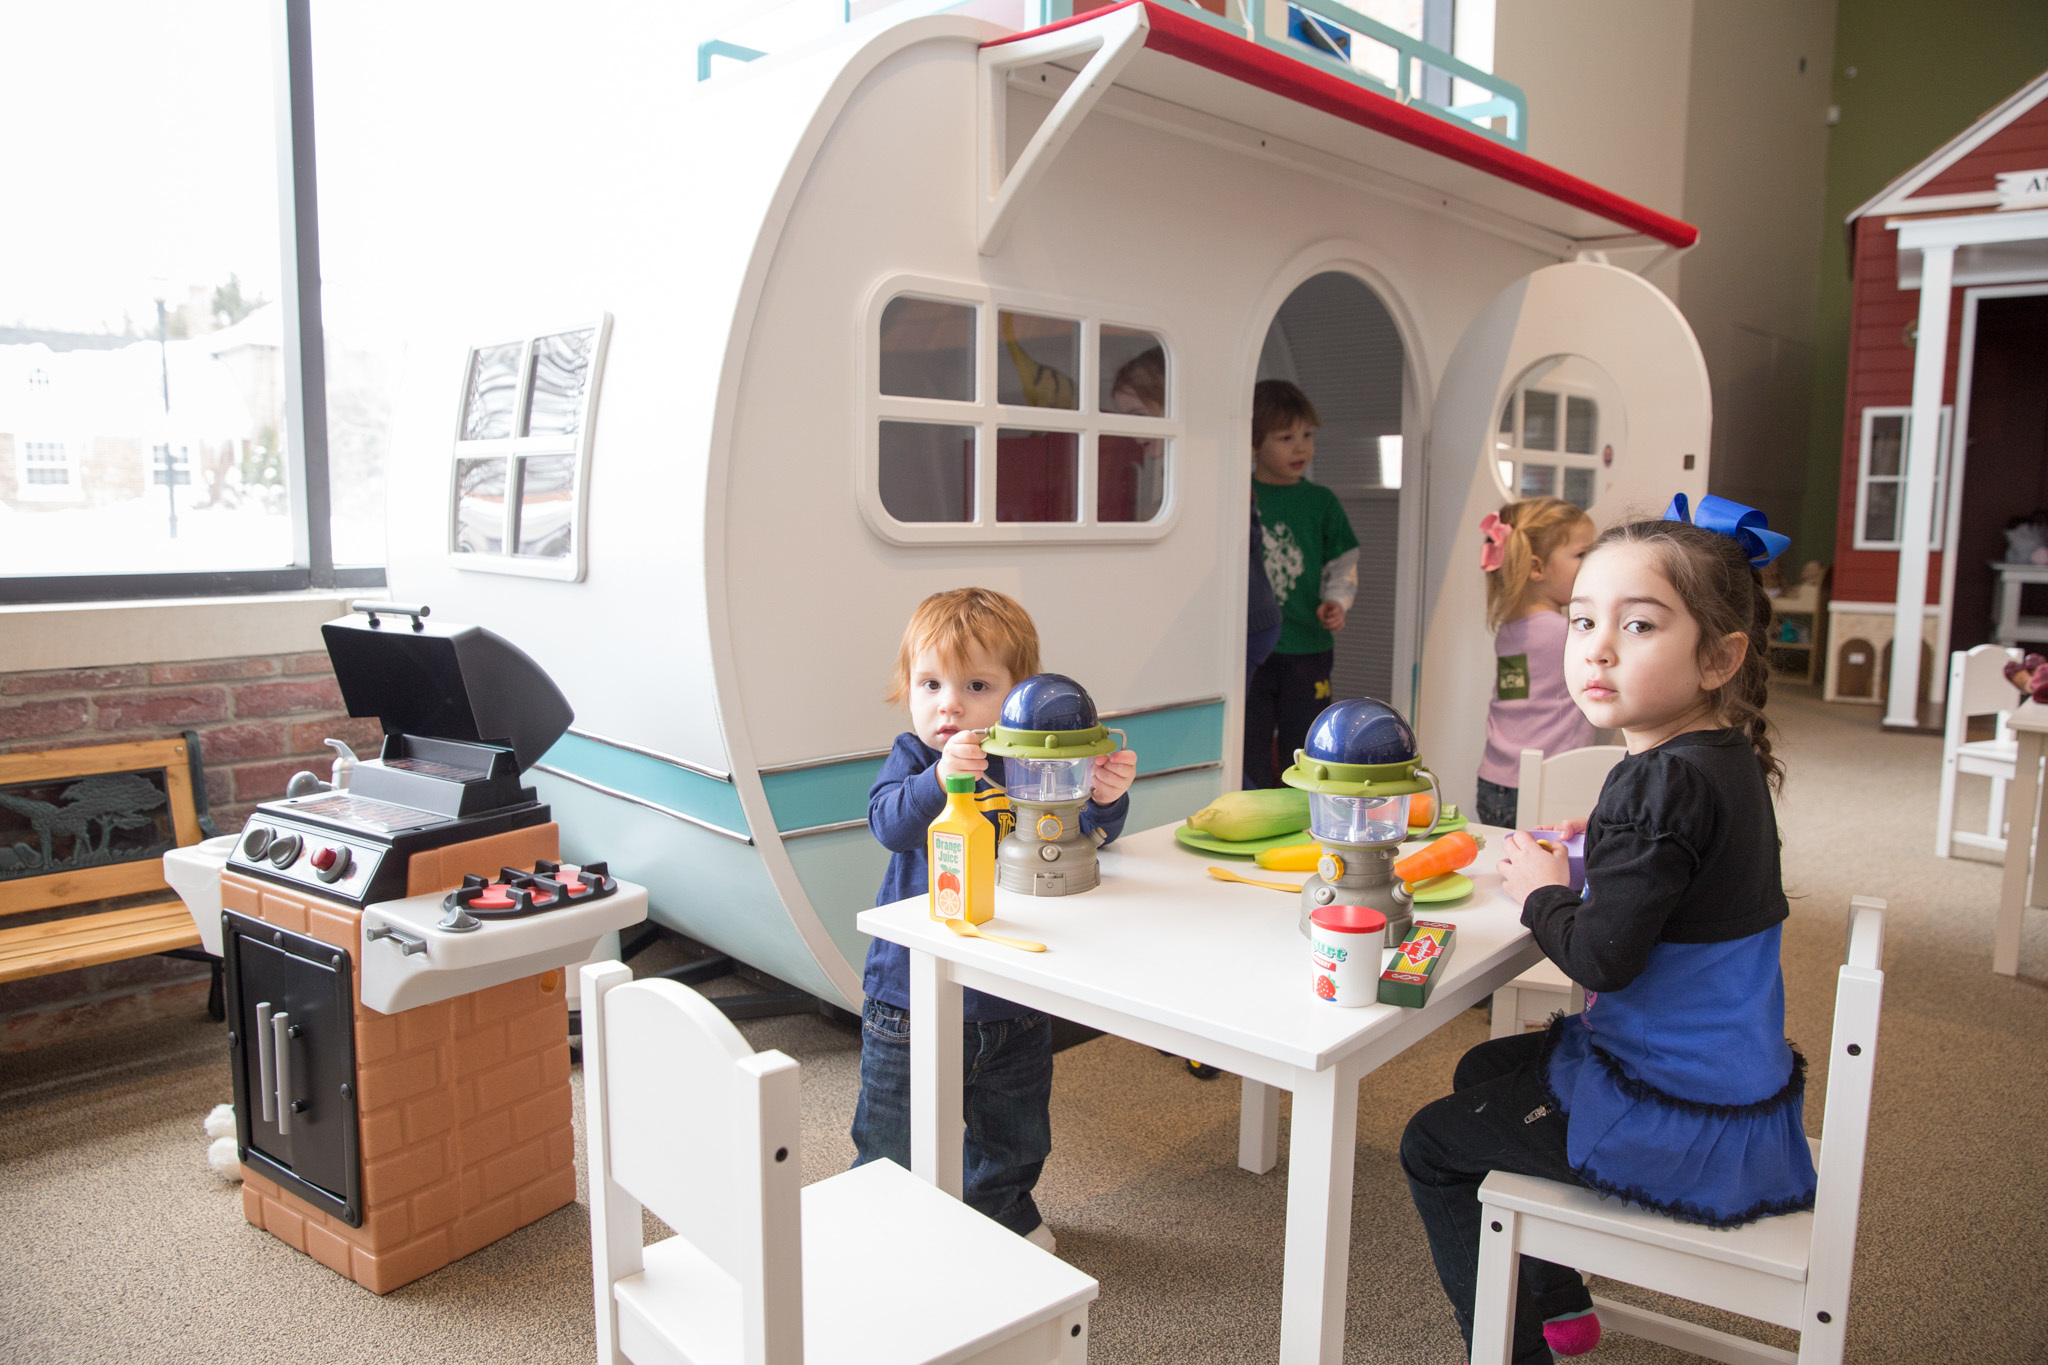 Indoor Playgrounds For Antsy Kids On Rainy Days